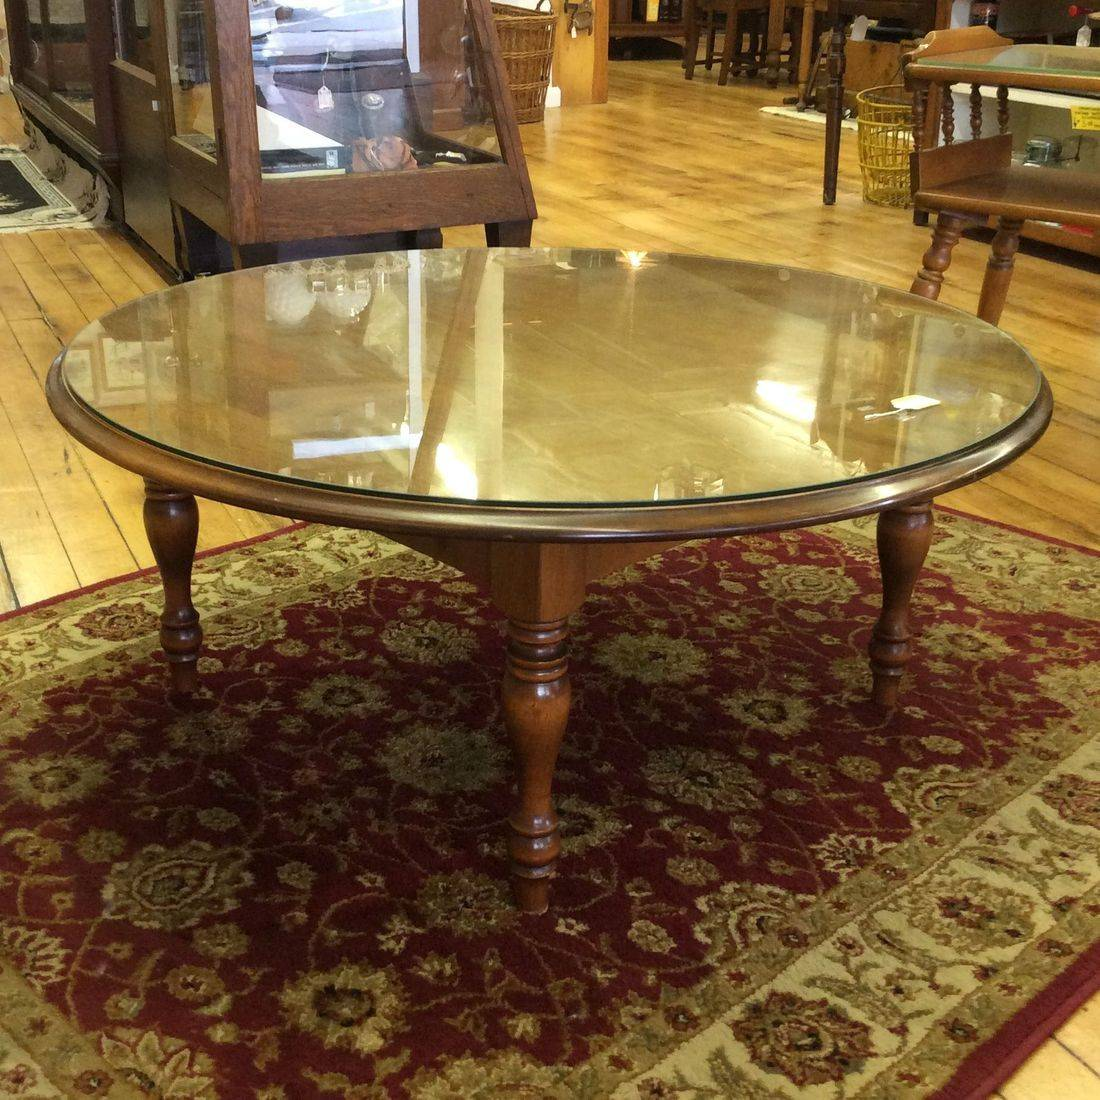 "Mid Century Modern Round Maple Coffee Table w/Glass Top 36""D x 15-1/2""H.  $95.00"